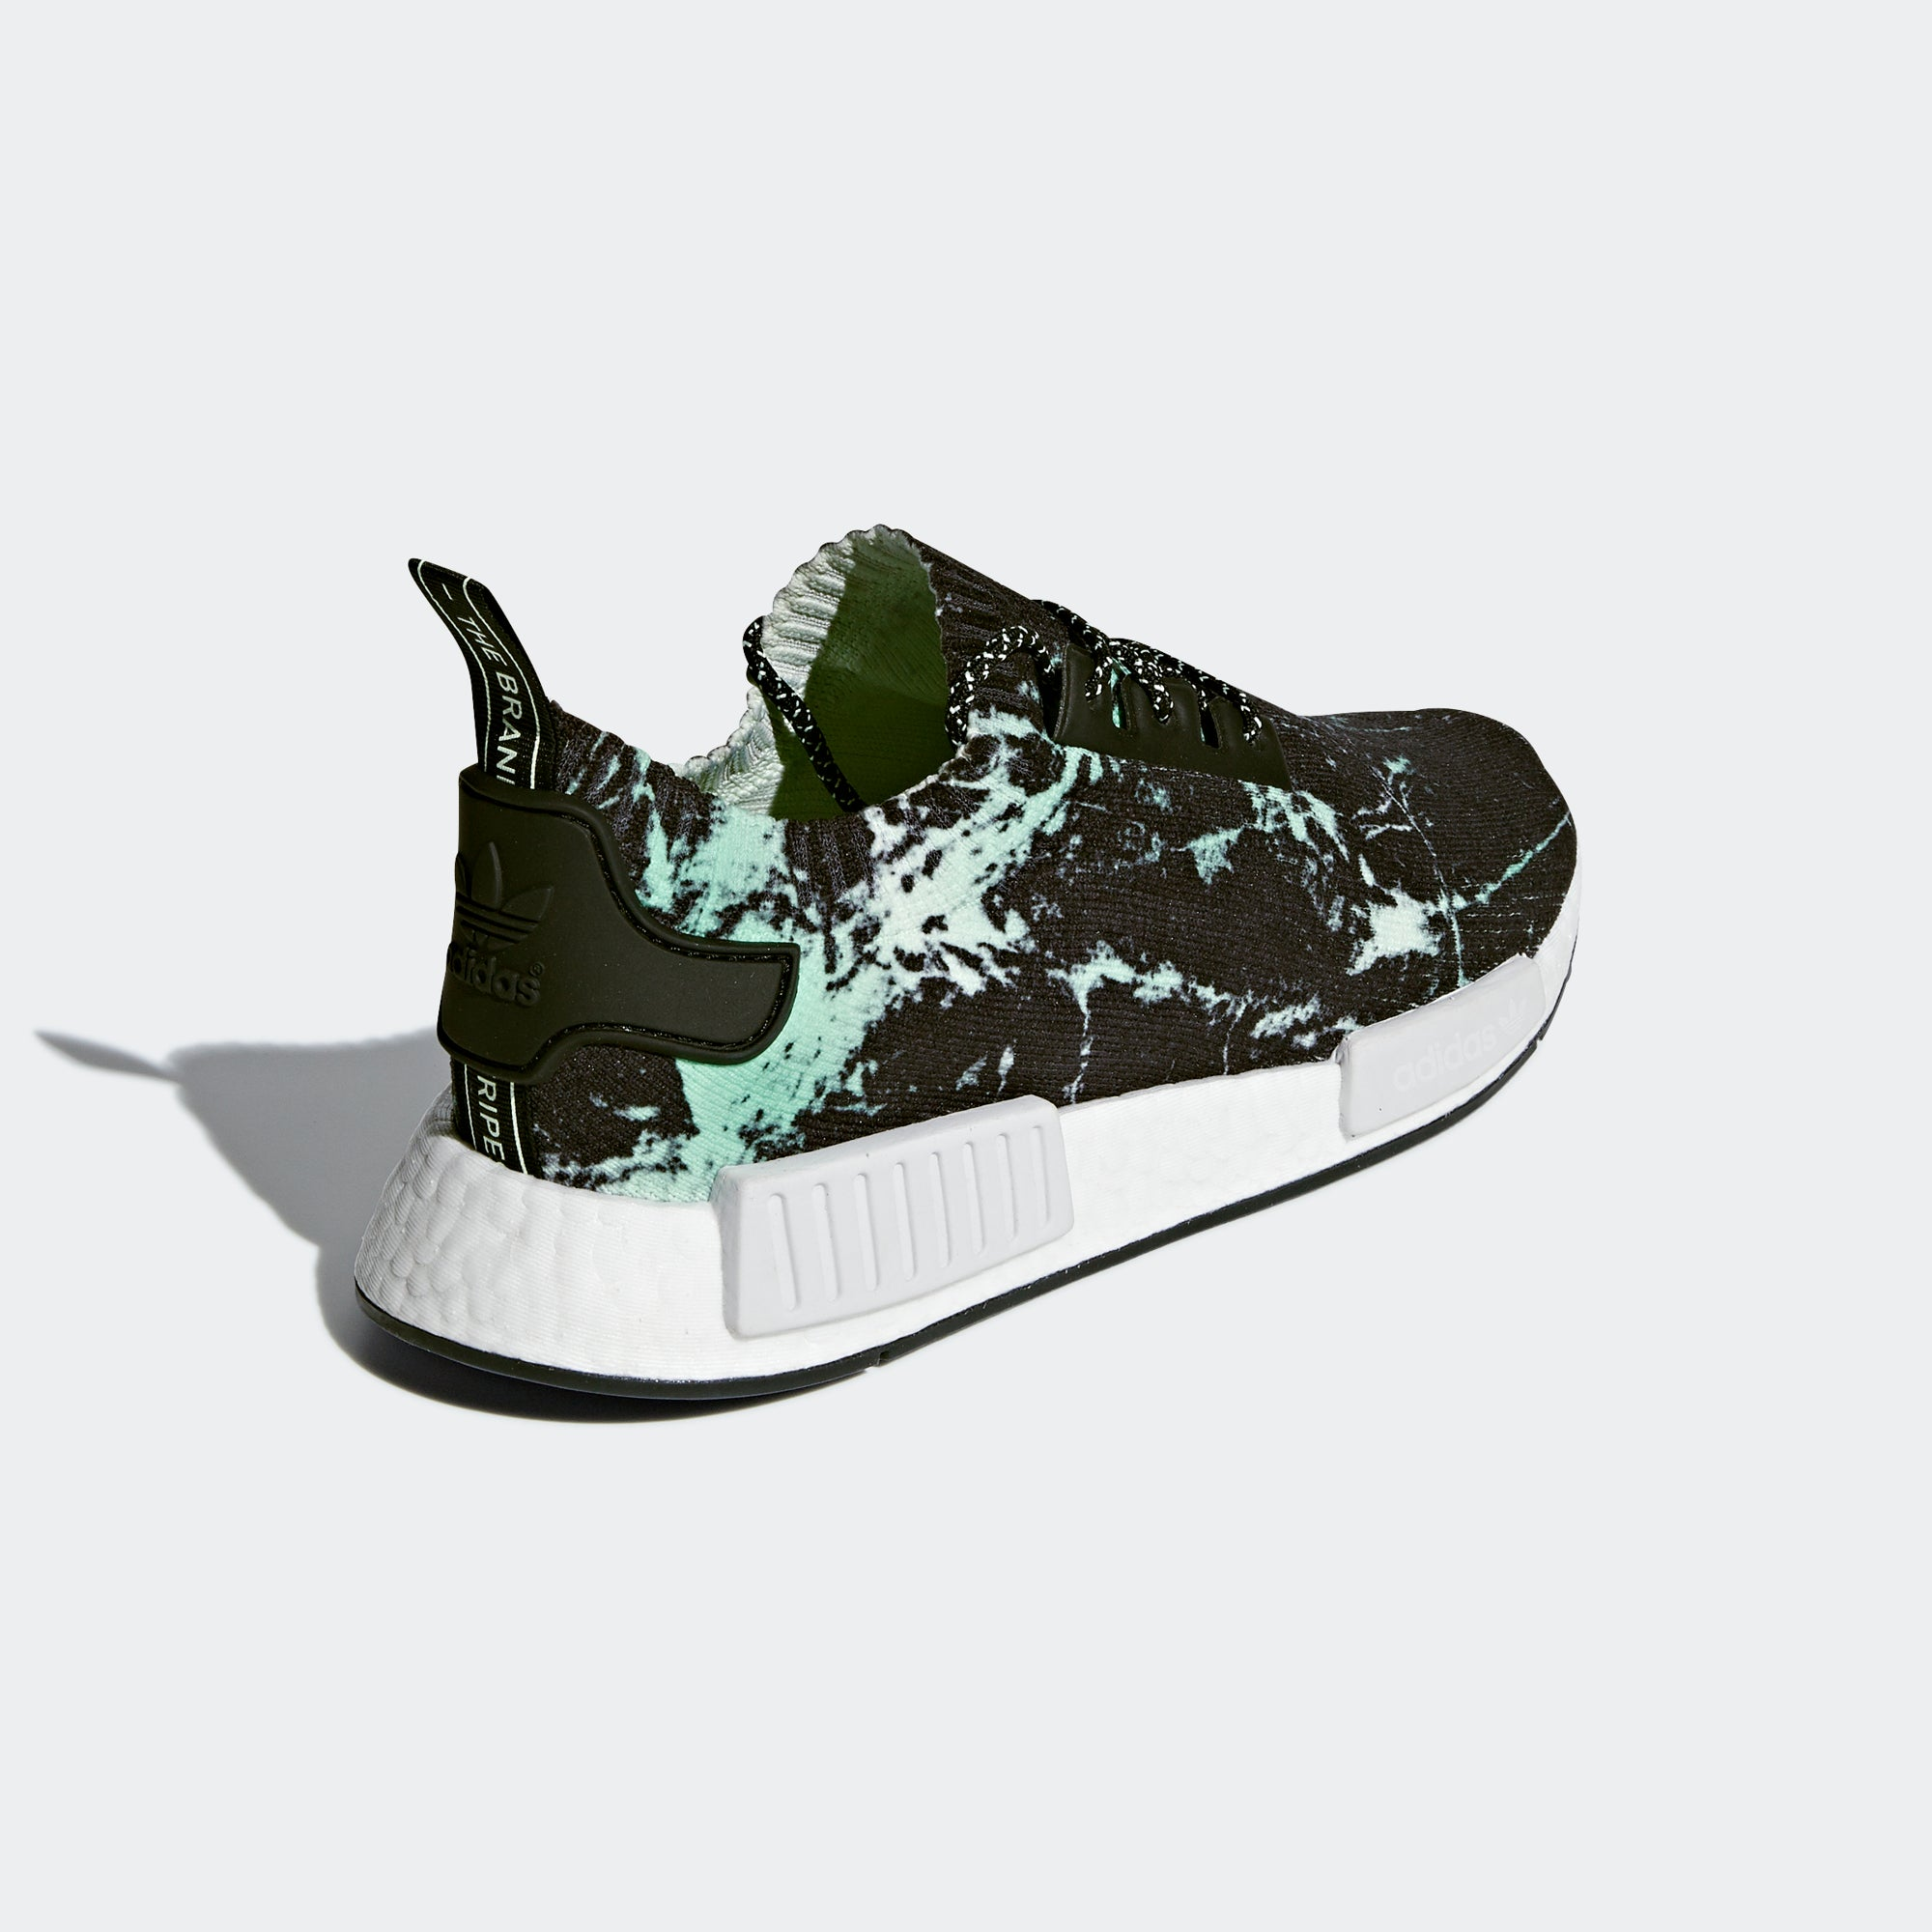 adidas NMD_R1 Primeknit Shoes Green Marble BB7996 | Chicago City ...